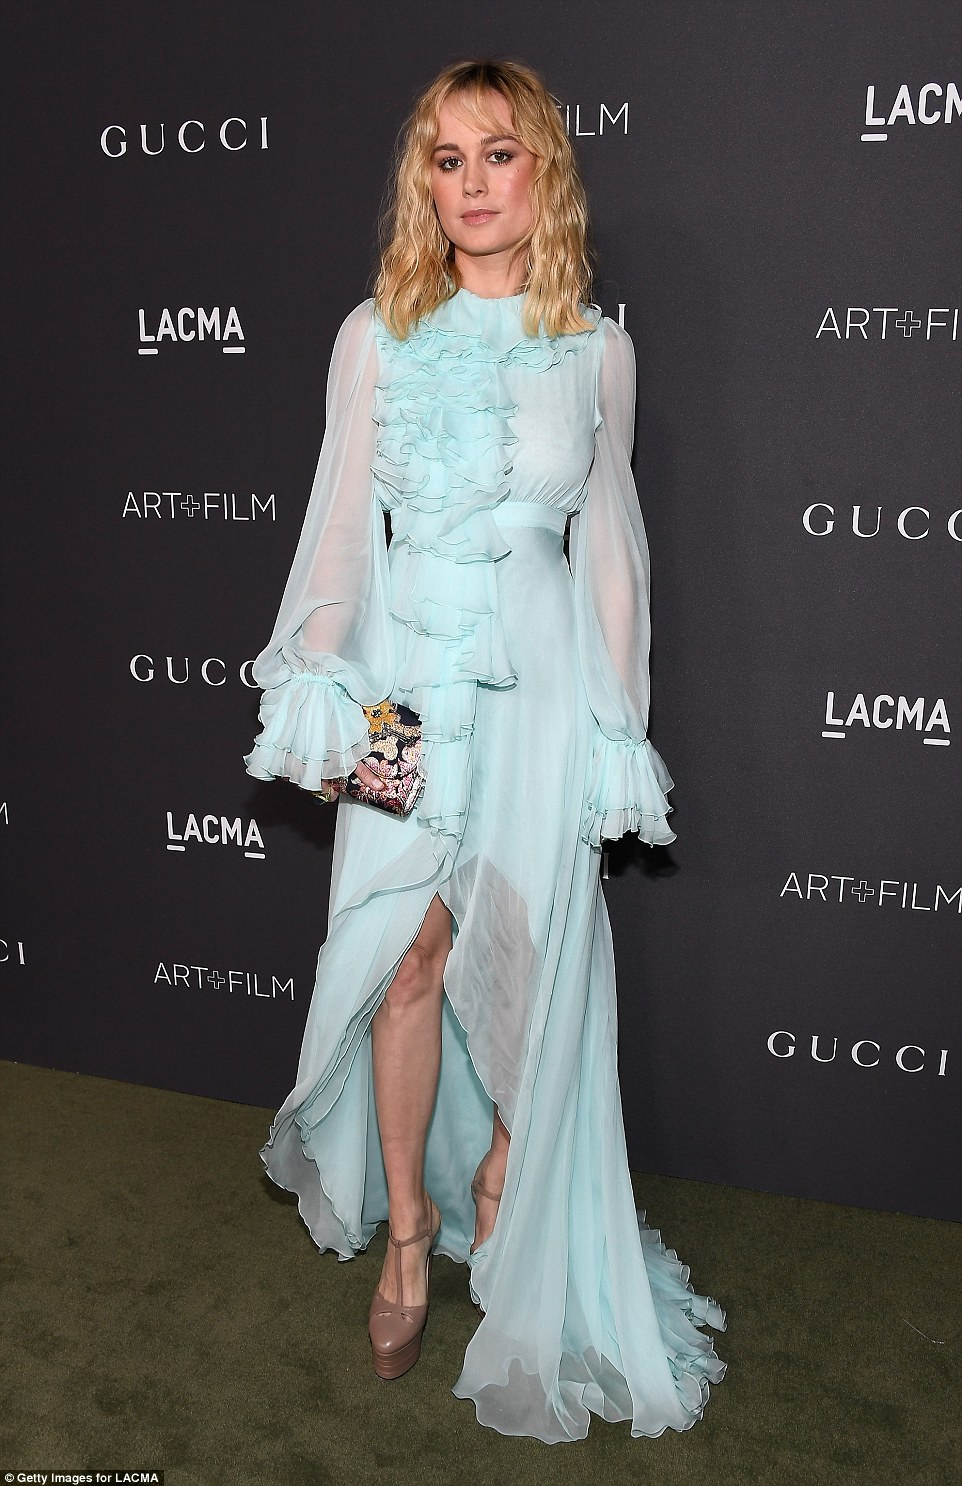 Brie Larson wears feathery turquoise gown to the LACMA Art + Film Gala in LA